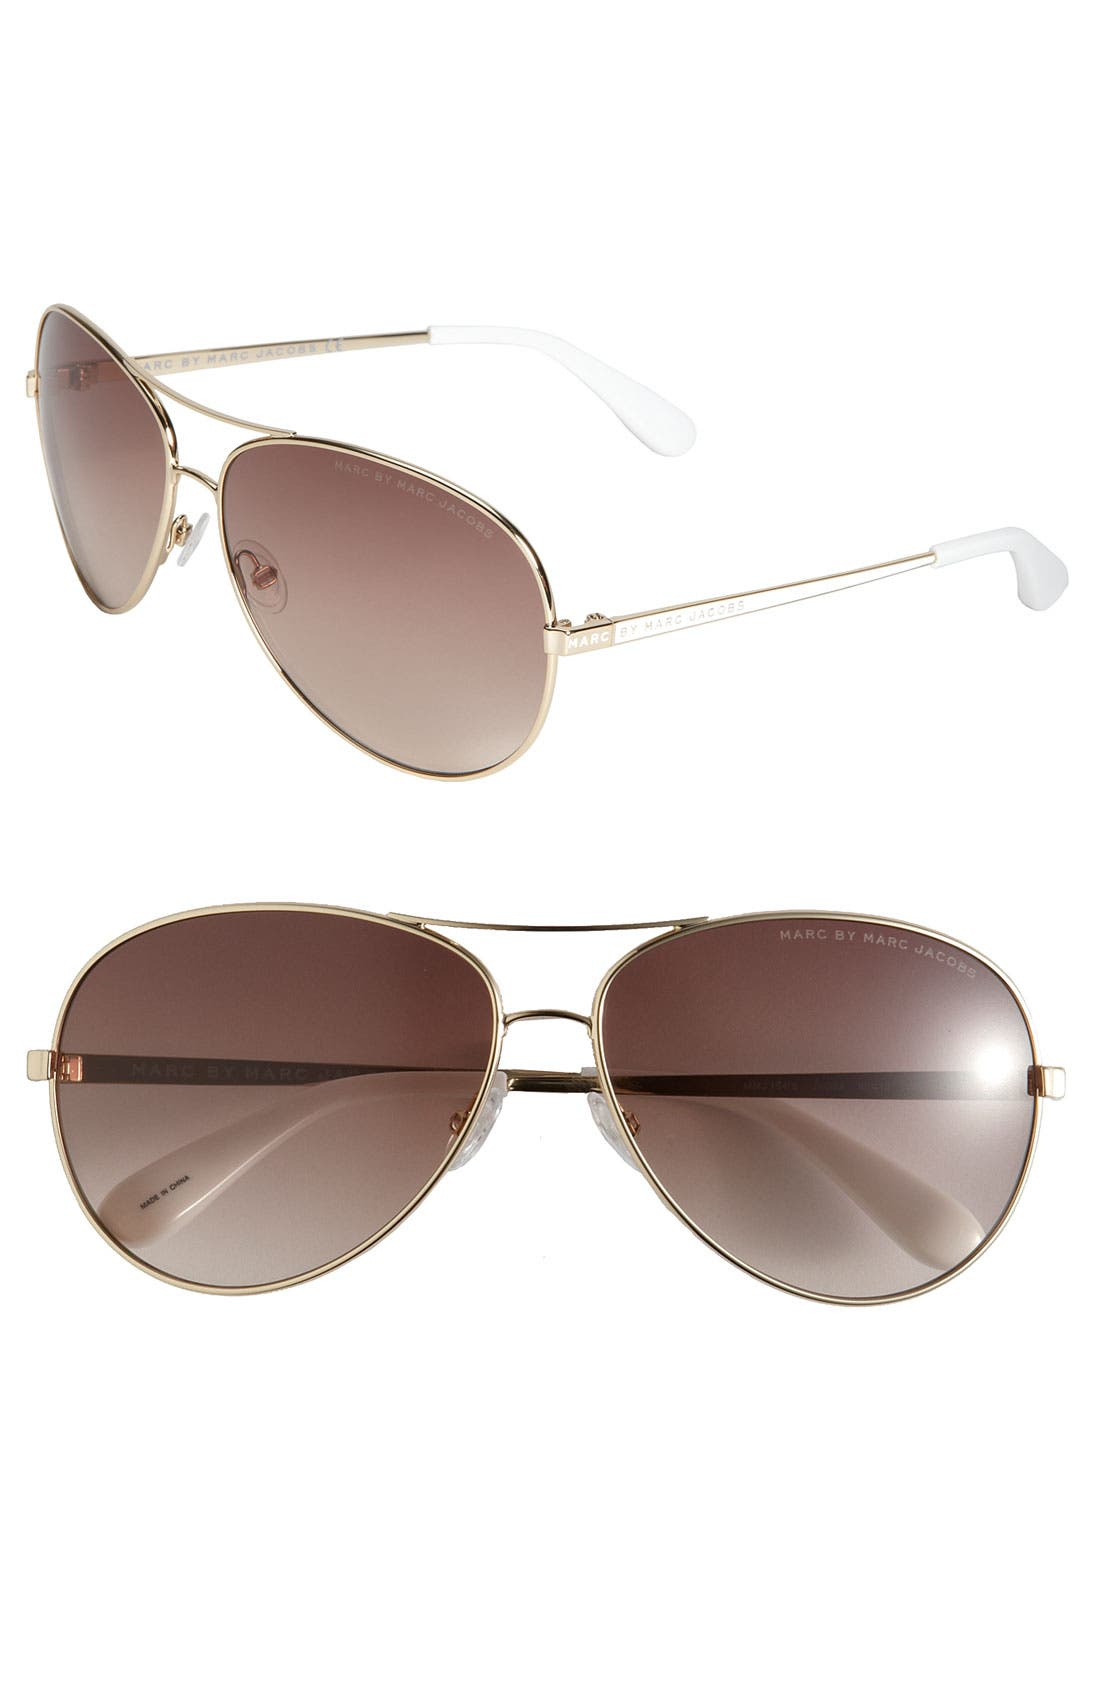 Main Image - MARC BY MARC JACOBS 60mm Metal Aviator Sunglasses